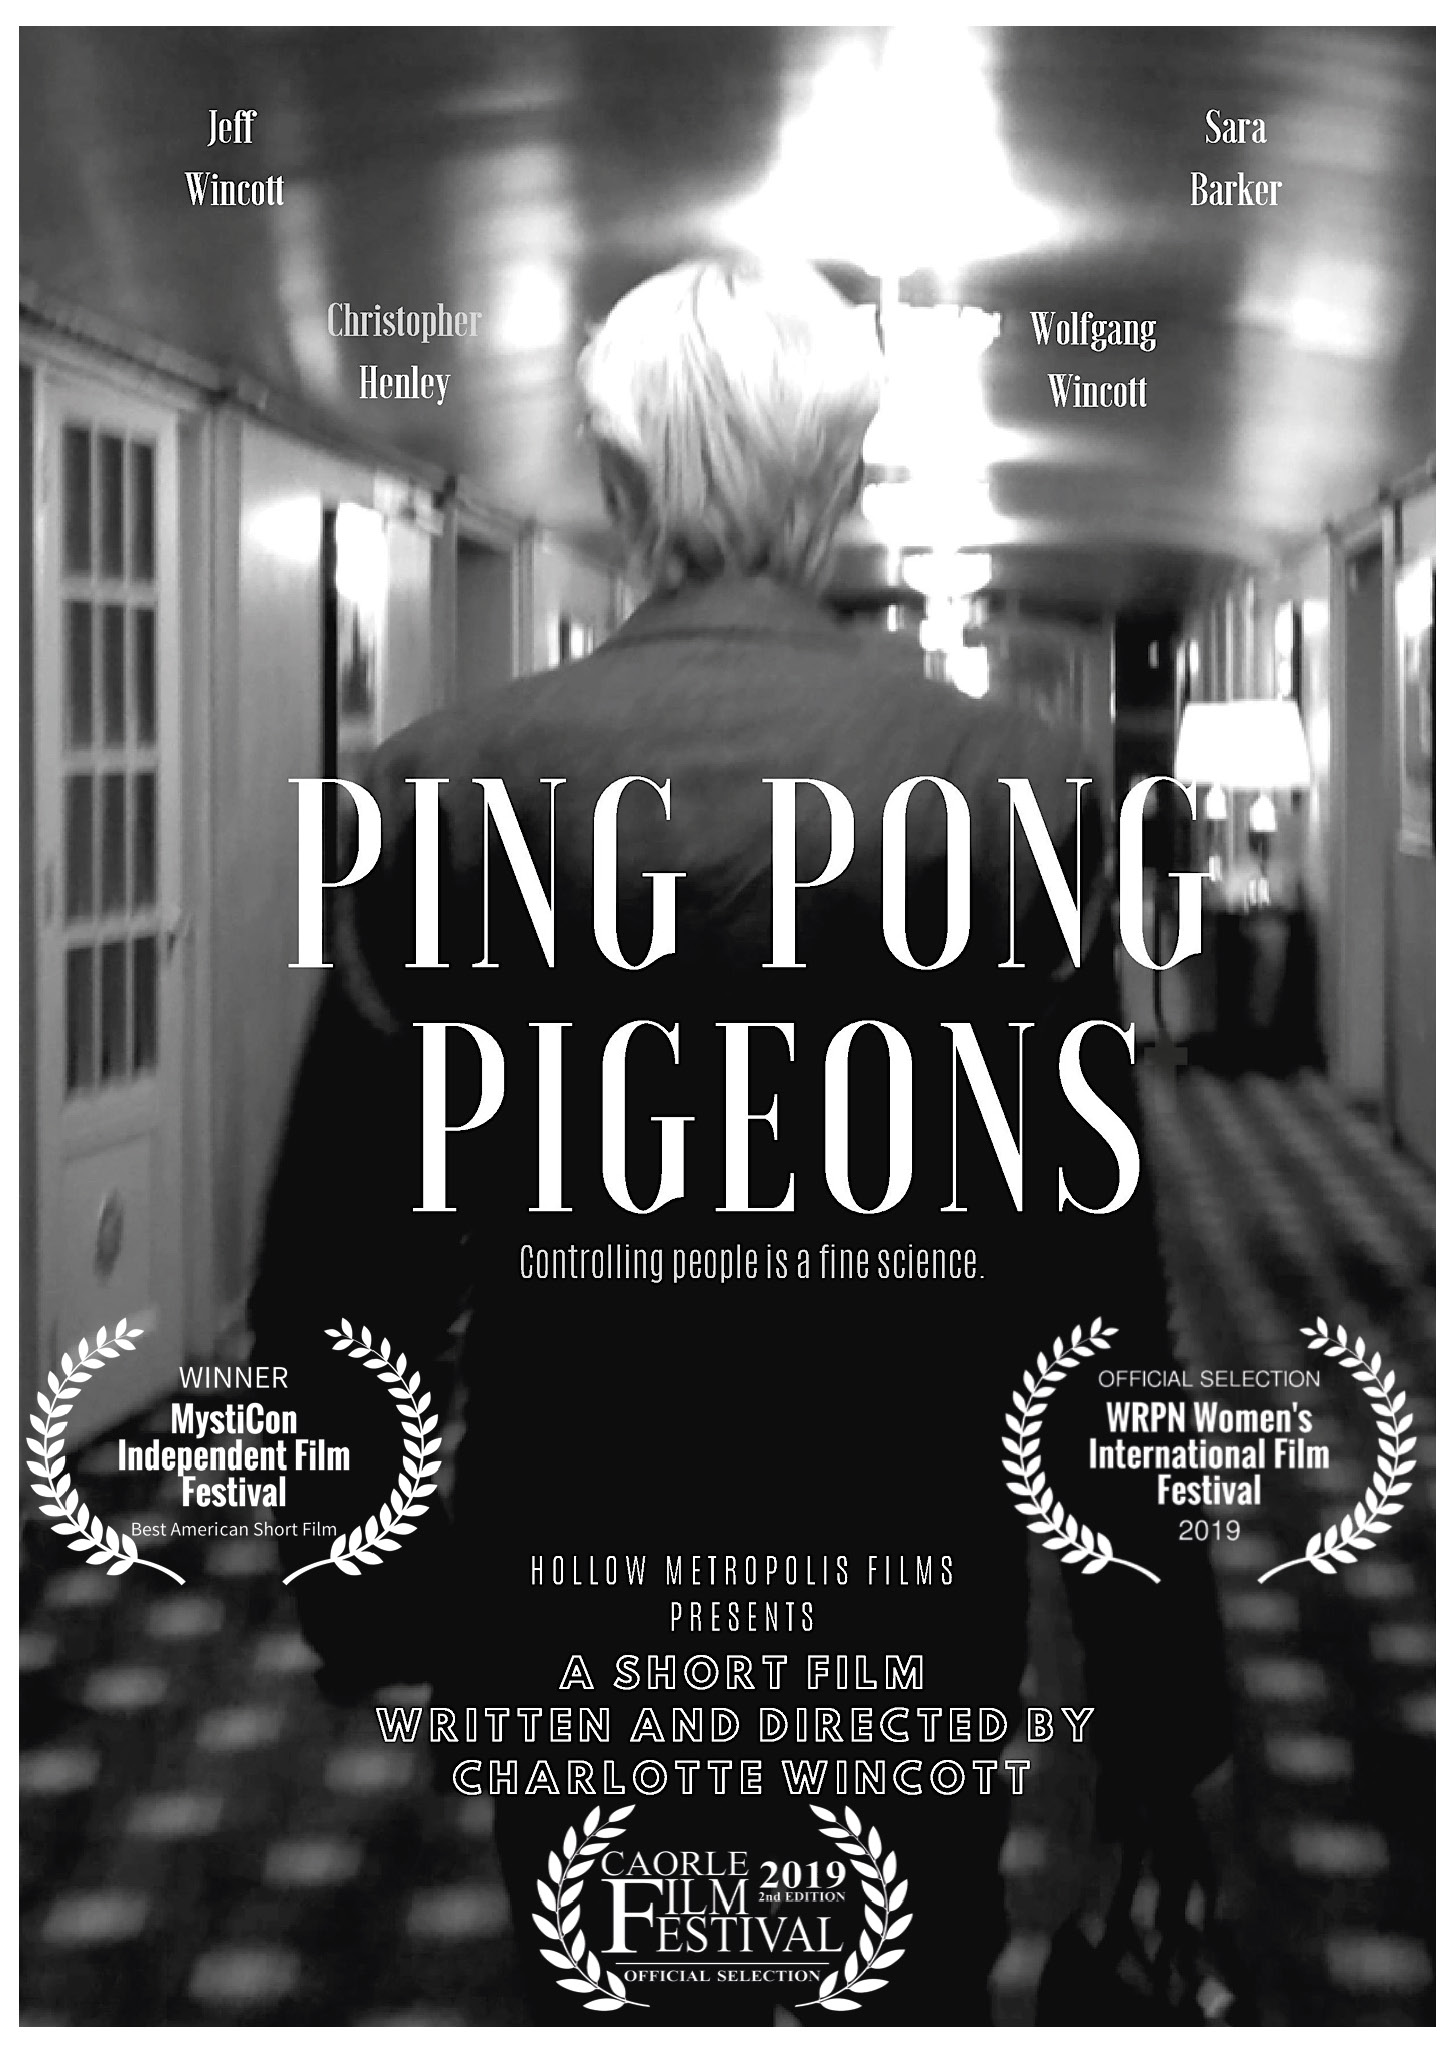 Poster of Ping Pong Pigeons by Charlotte Wincott